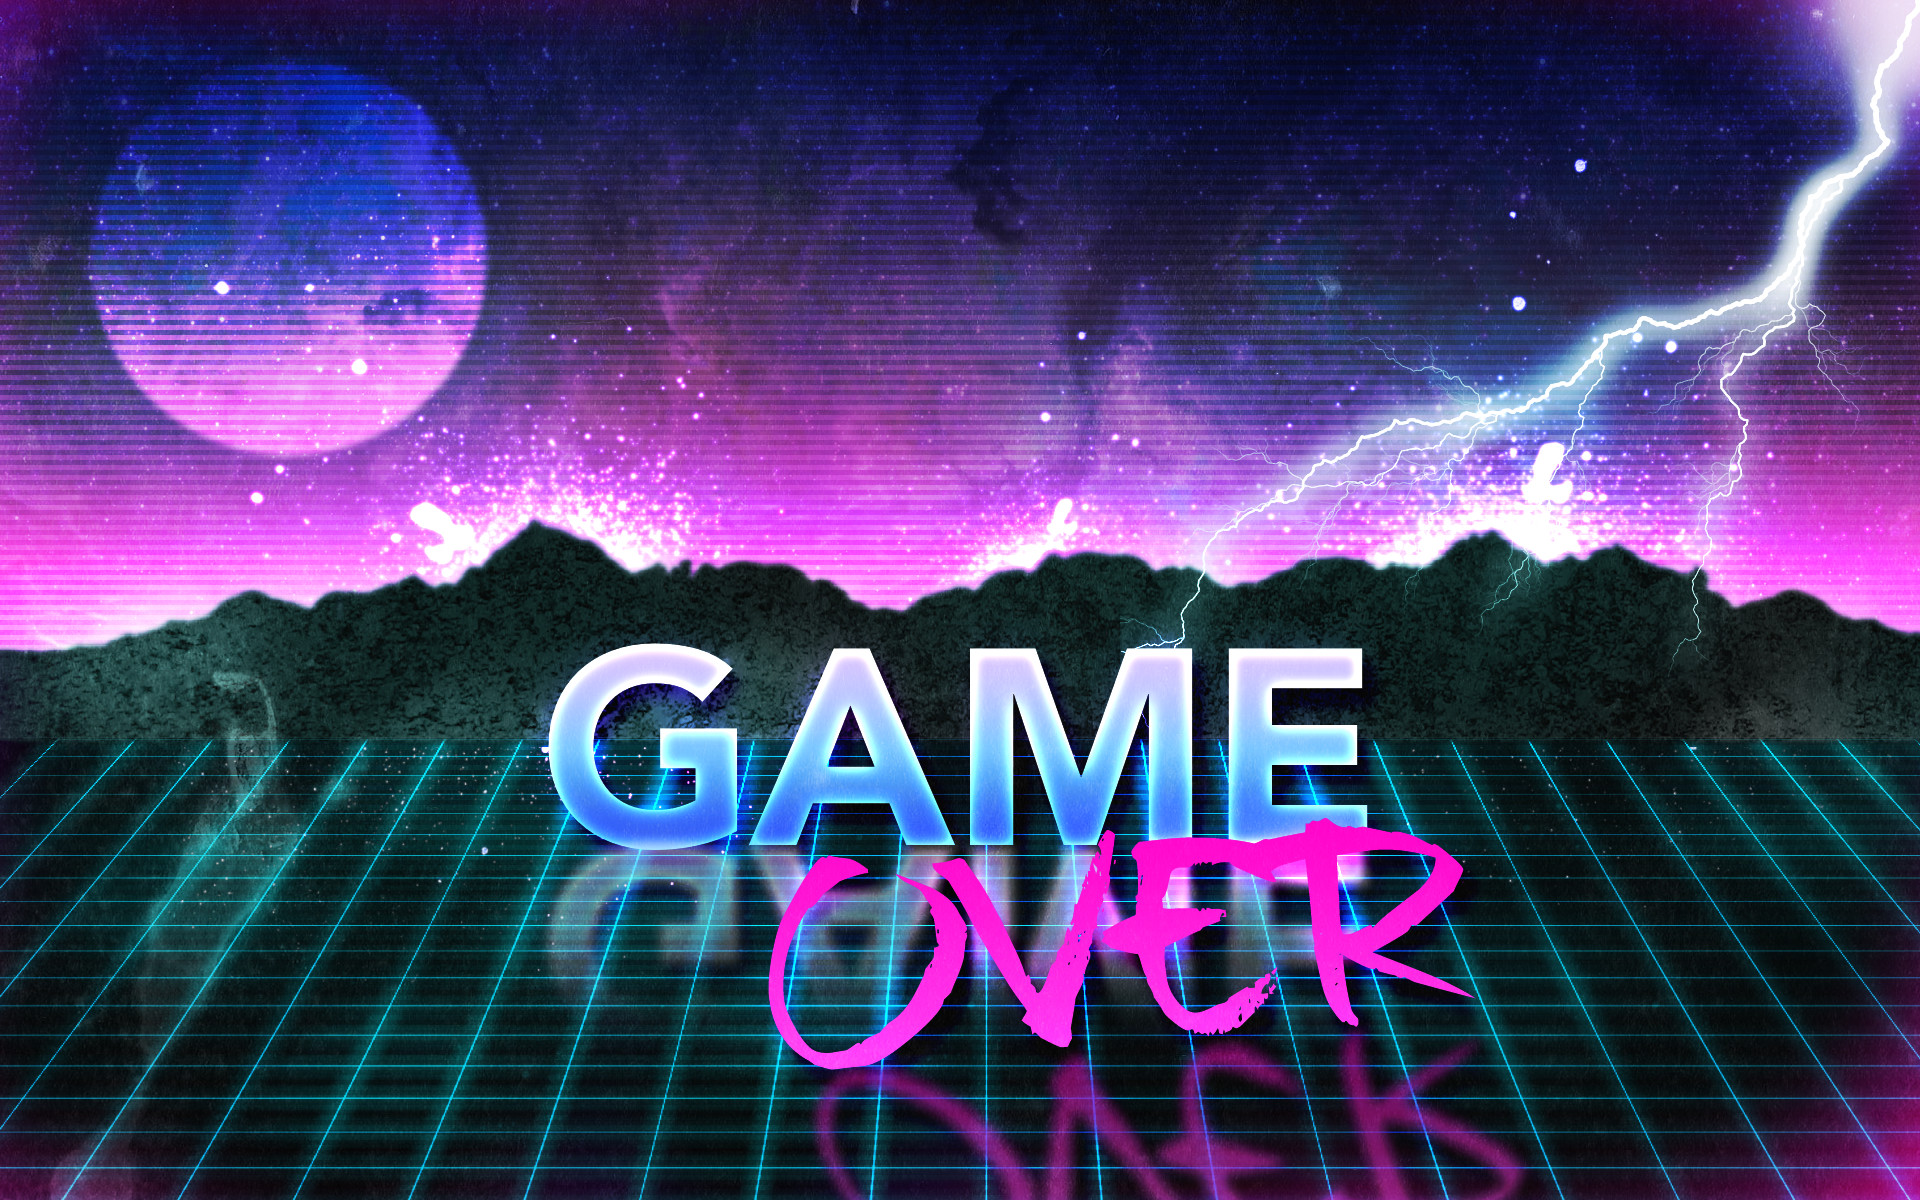 1920x1200 ... 80s Retro Game Over Wallpaper by Leepiin